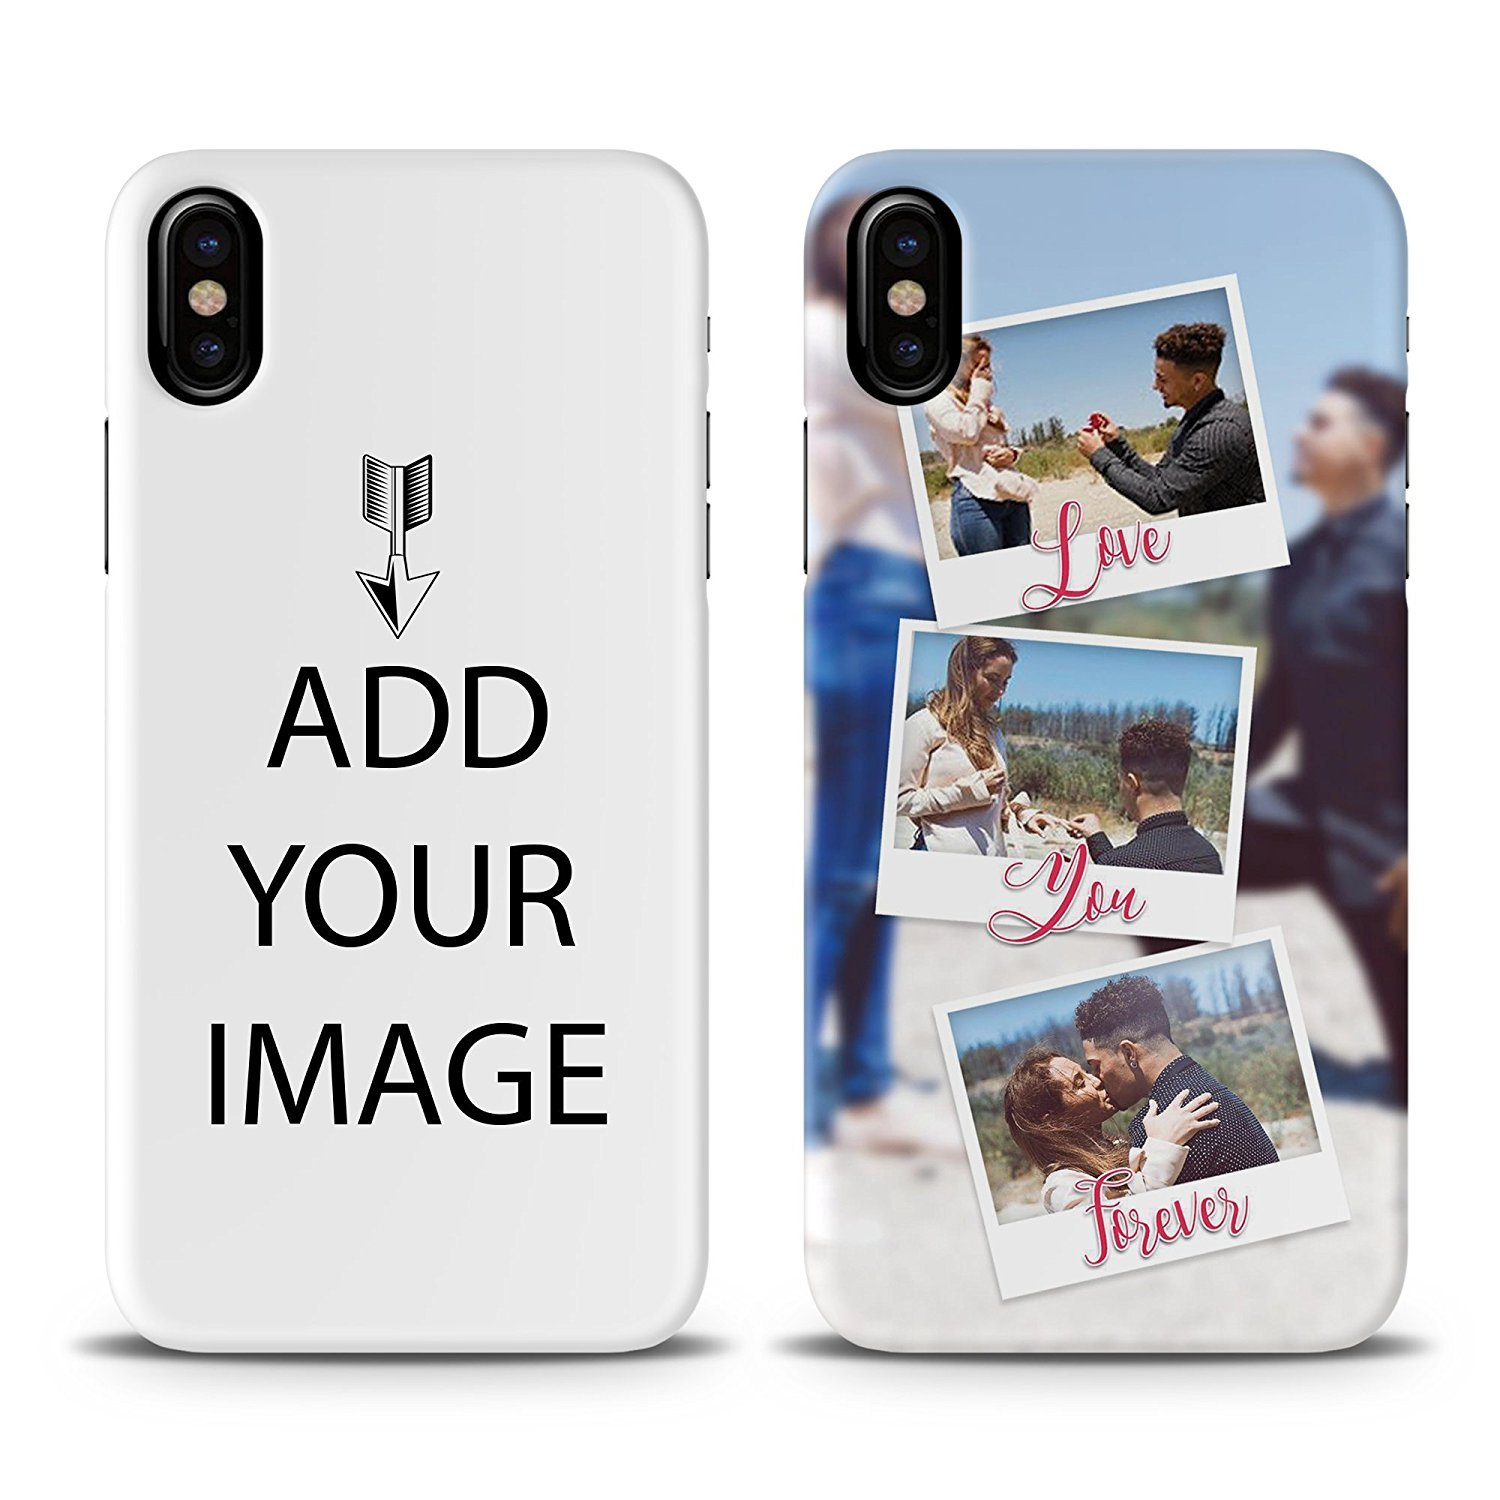 huge discount 256c6 b82e6 Customized iPhone X Case, Monogram iPhone X Case,Make Print online iPhone  10 back cover, Design iPhone X Case, Create Your Own DIY Collage Text Logo  ...